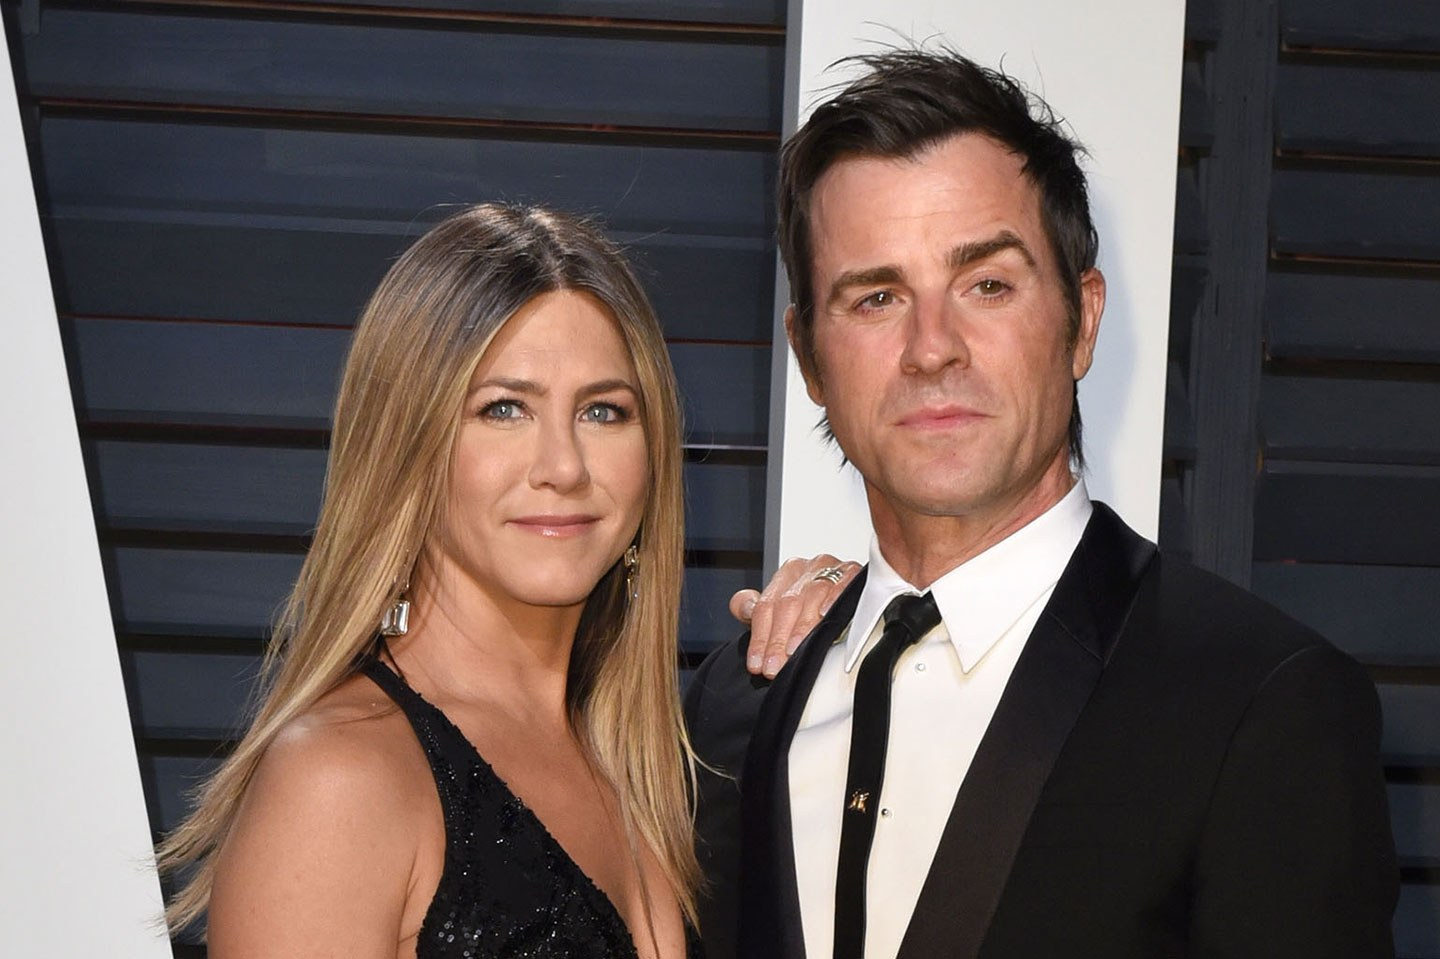 Jennifer Aniston e Justin Theroux anunciam o divórcio